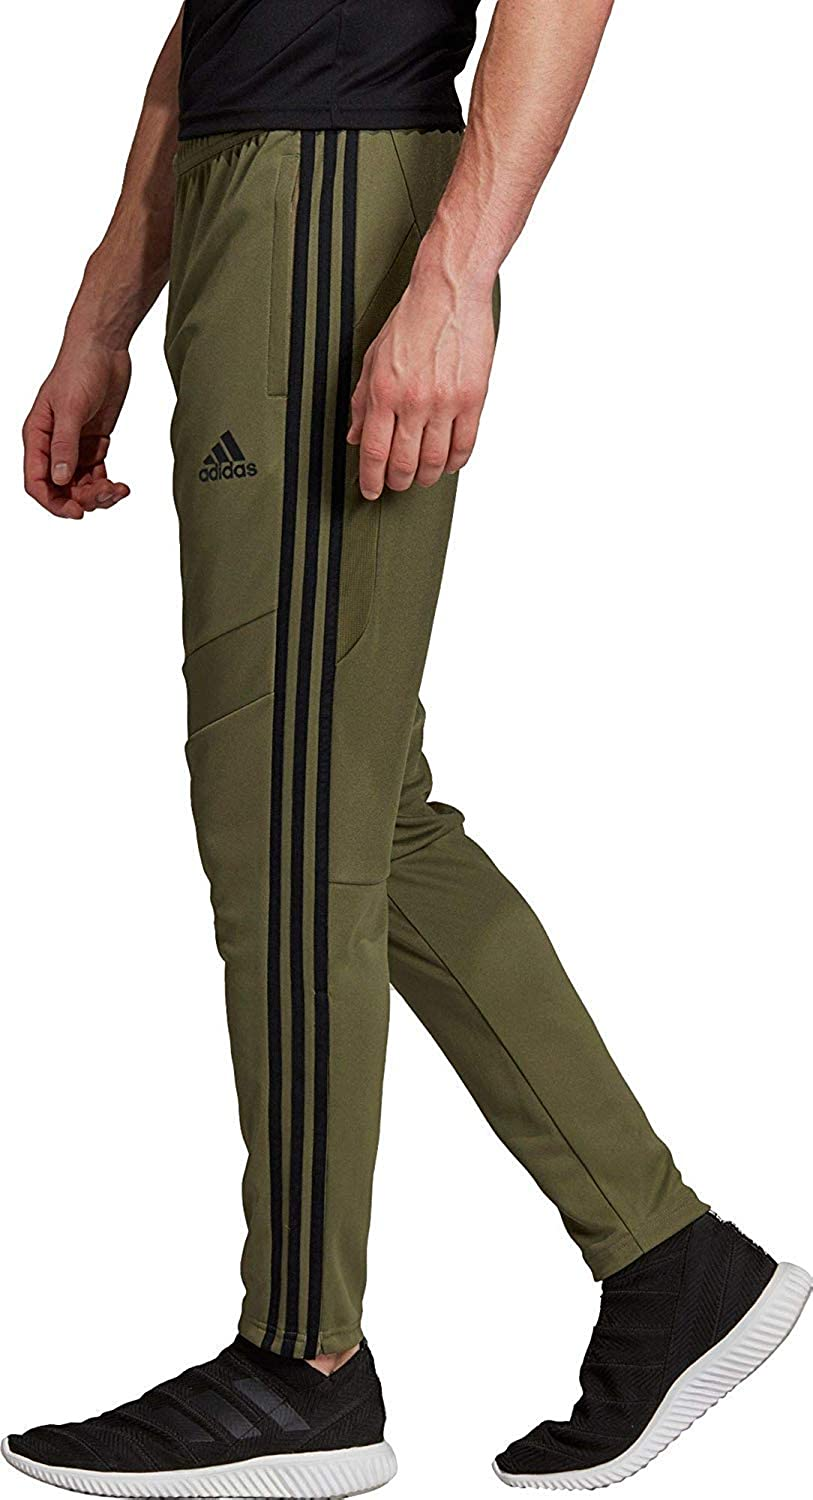 Amazon.com: adidas Men's Tiro 19 Training Pant Active, Raw Khaki/Black, XX-Large: Clothing